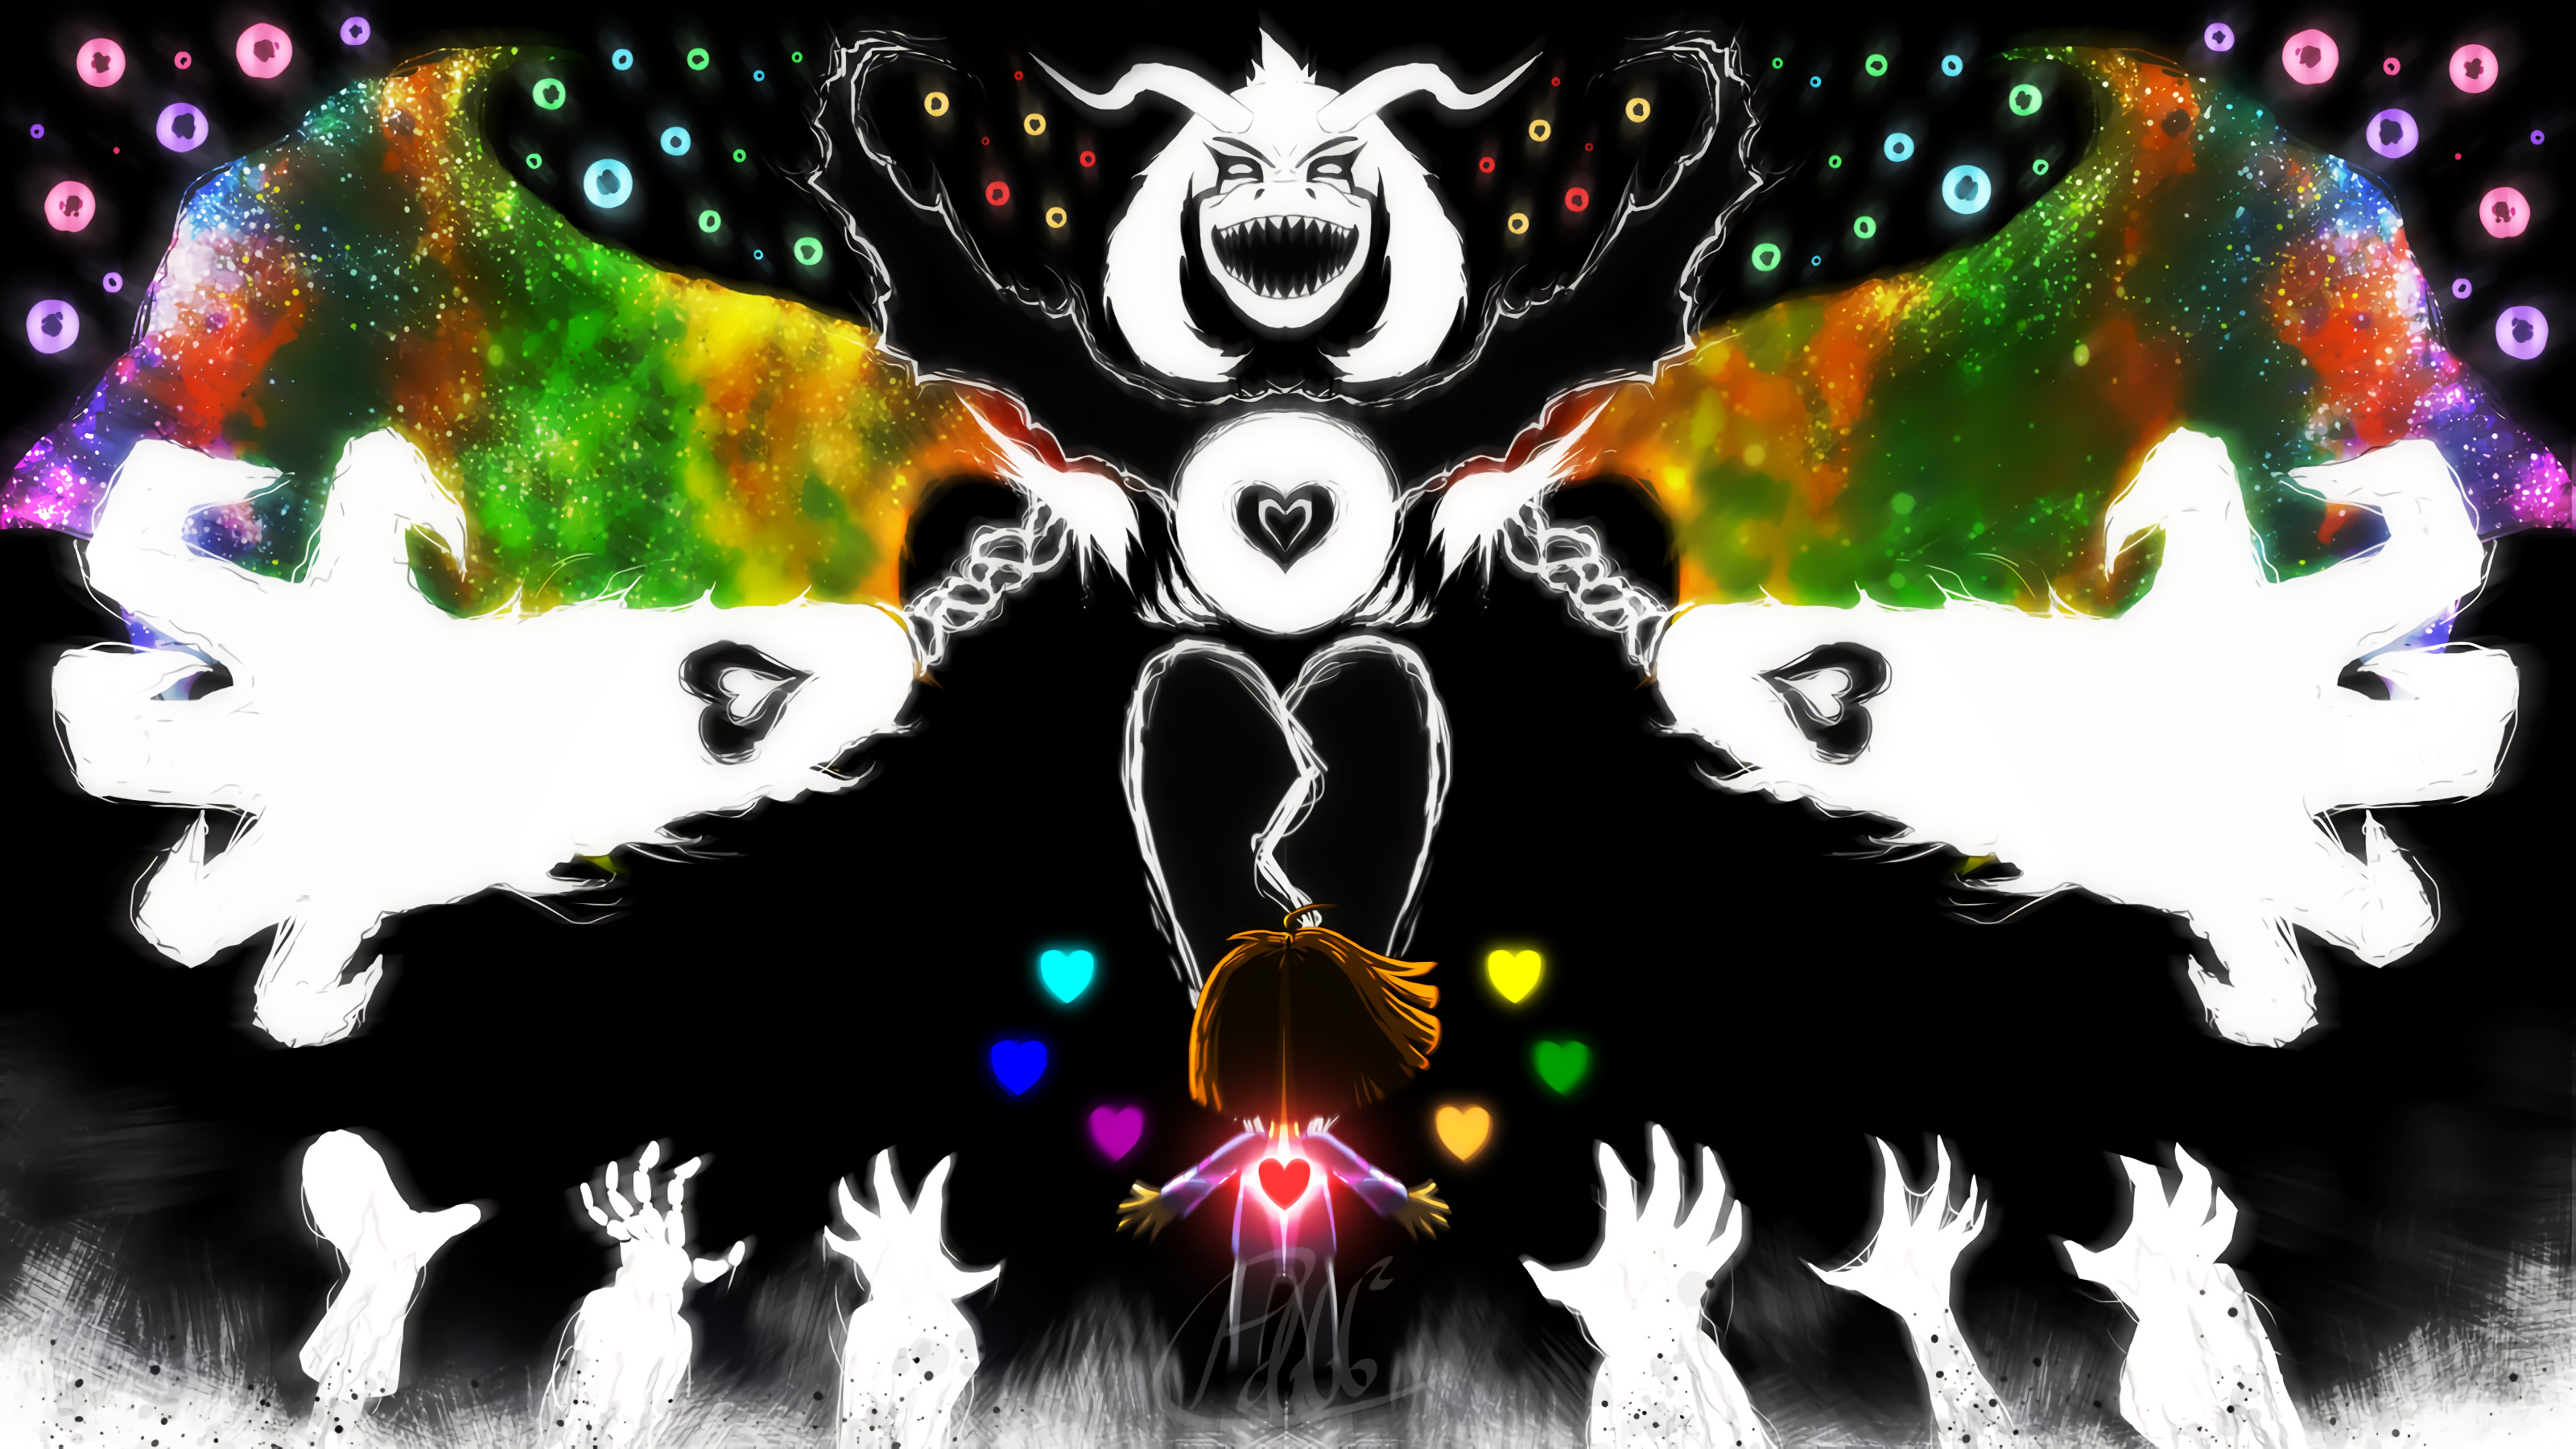 3200x1800 - Undertale Wallpaper 1920x1080 48